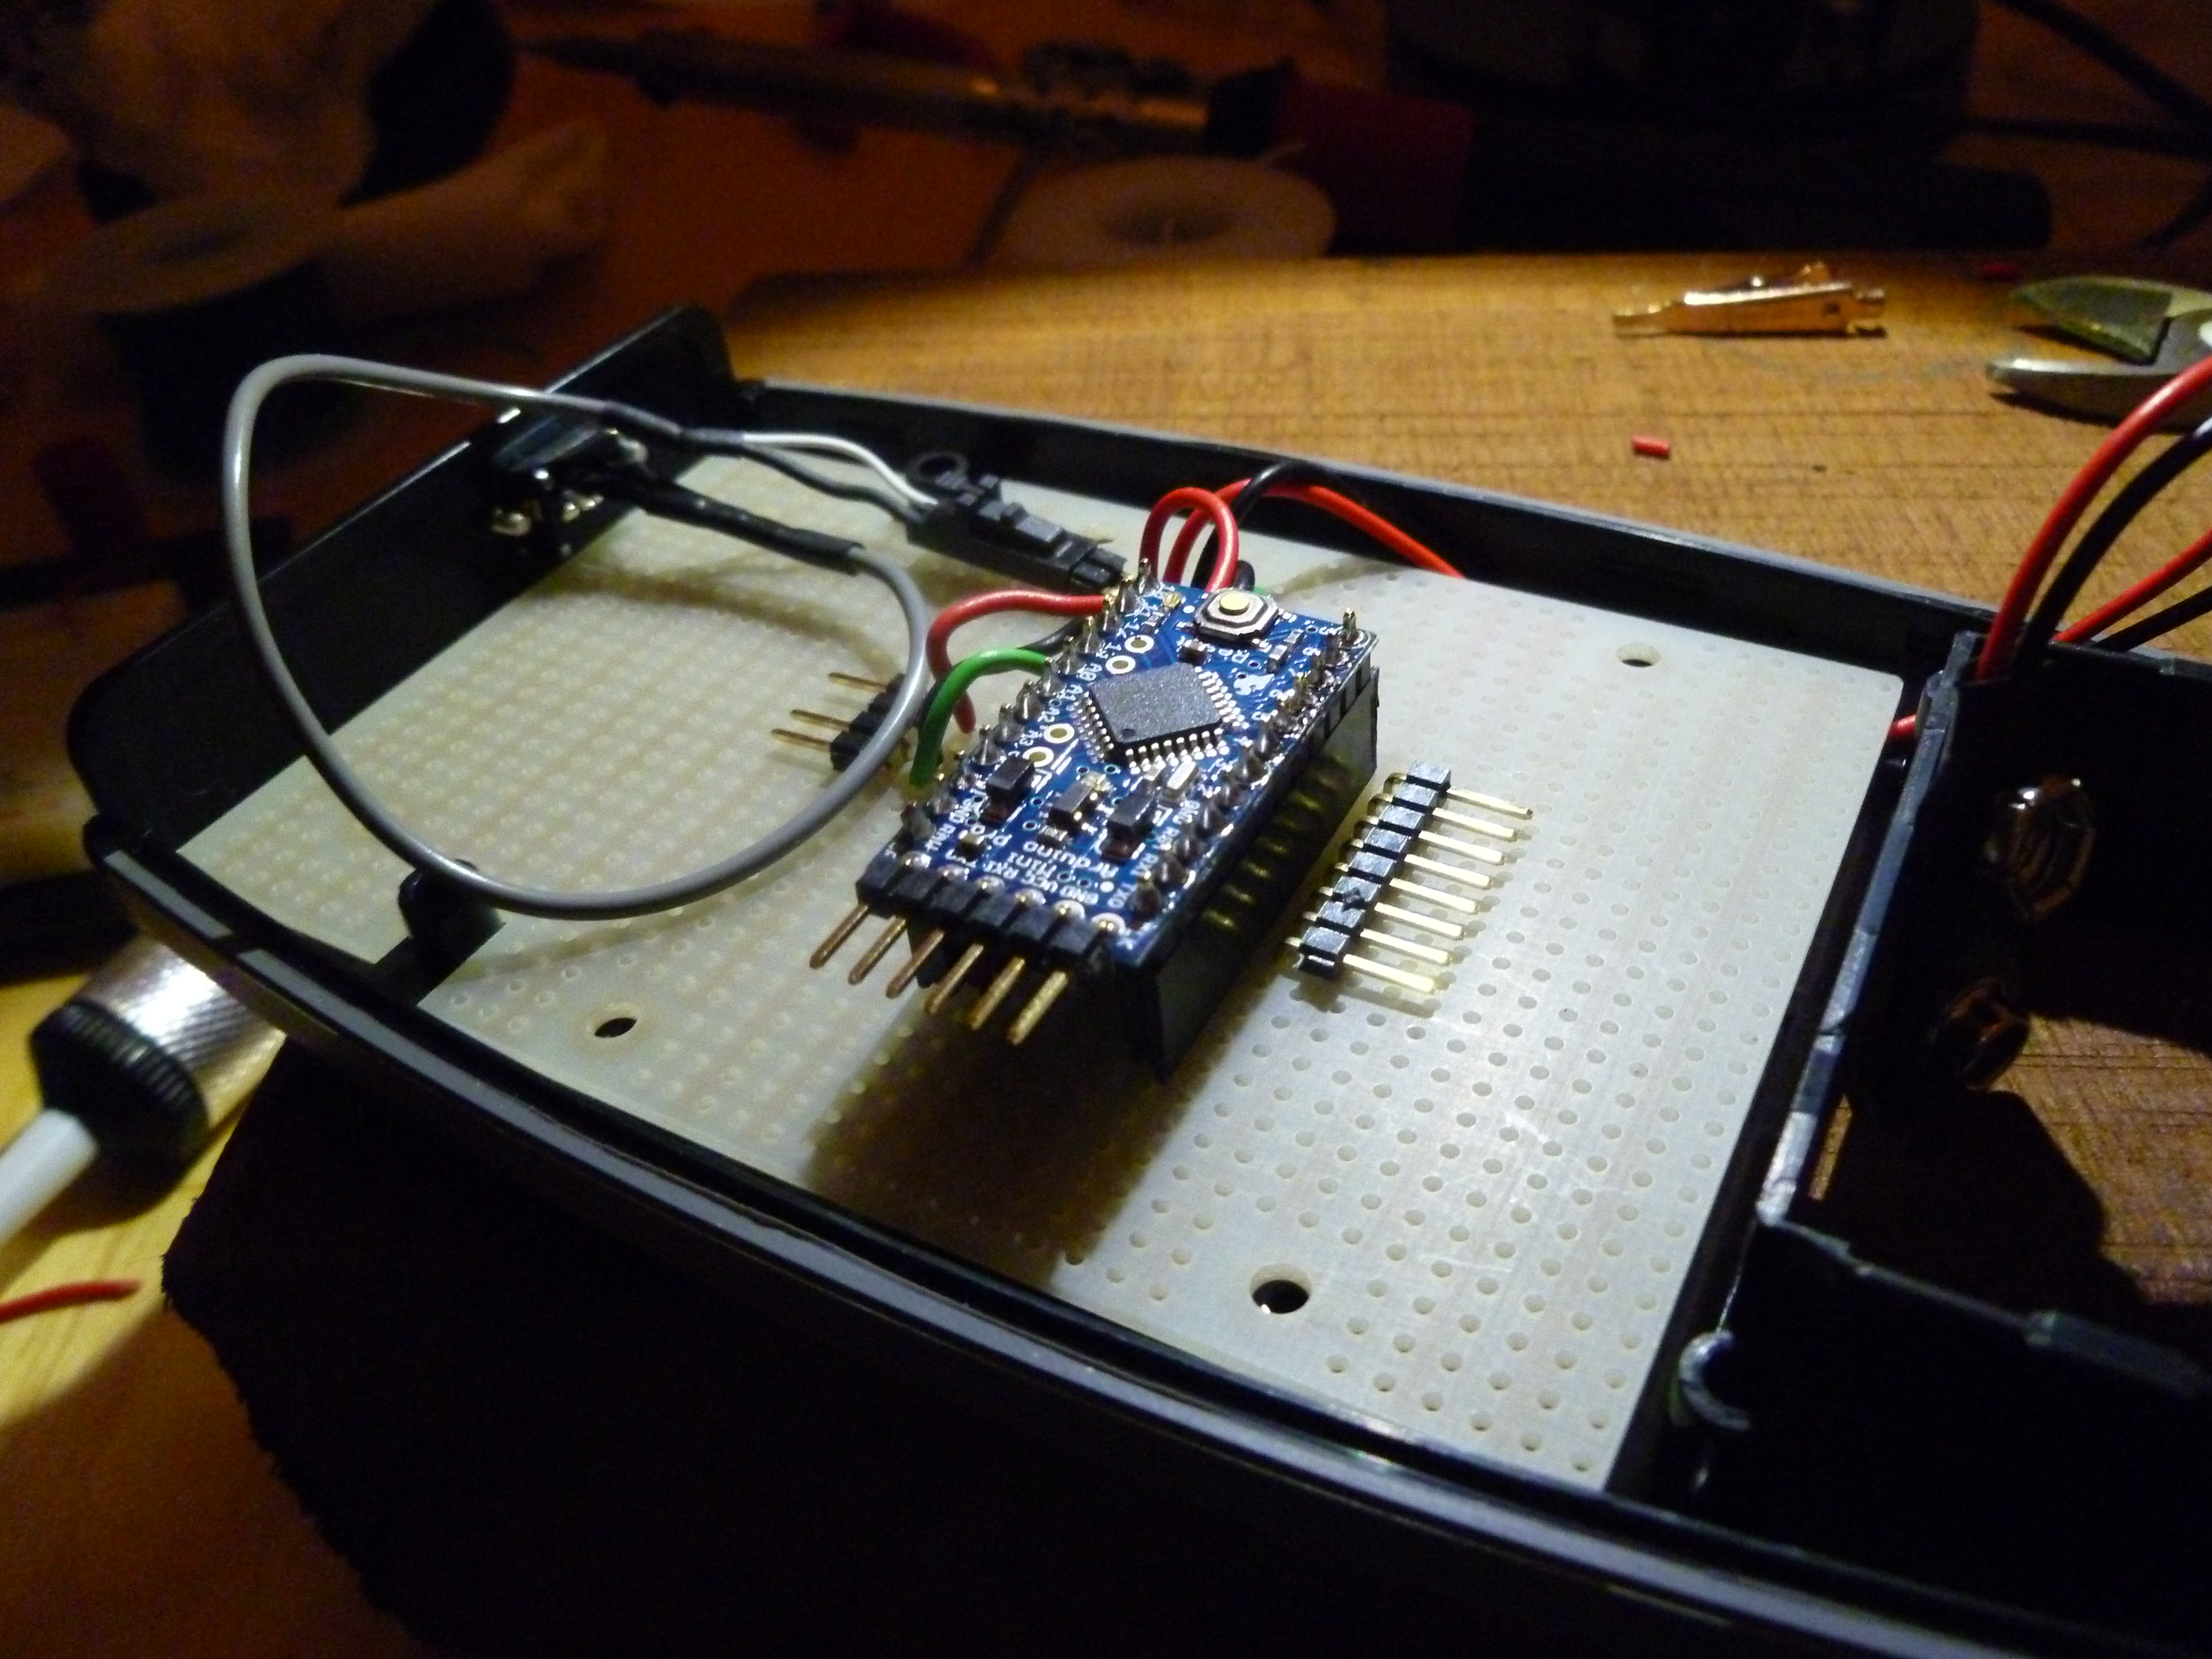 Picture of Attach Switch Cable to Protoboard